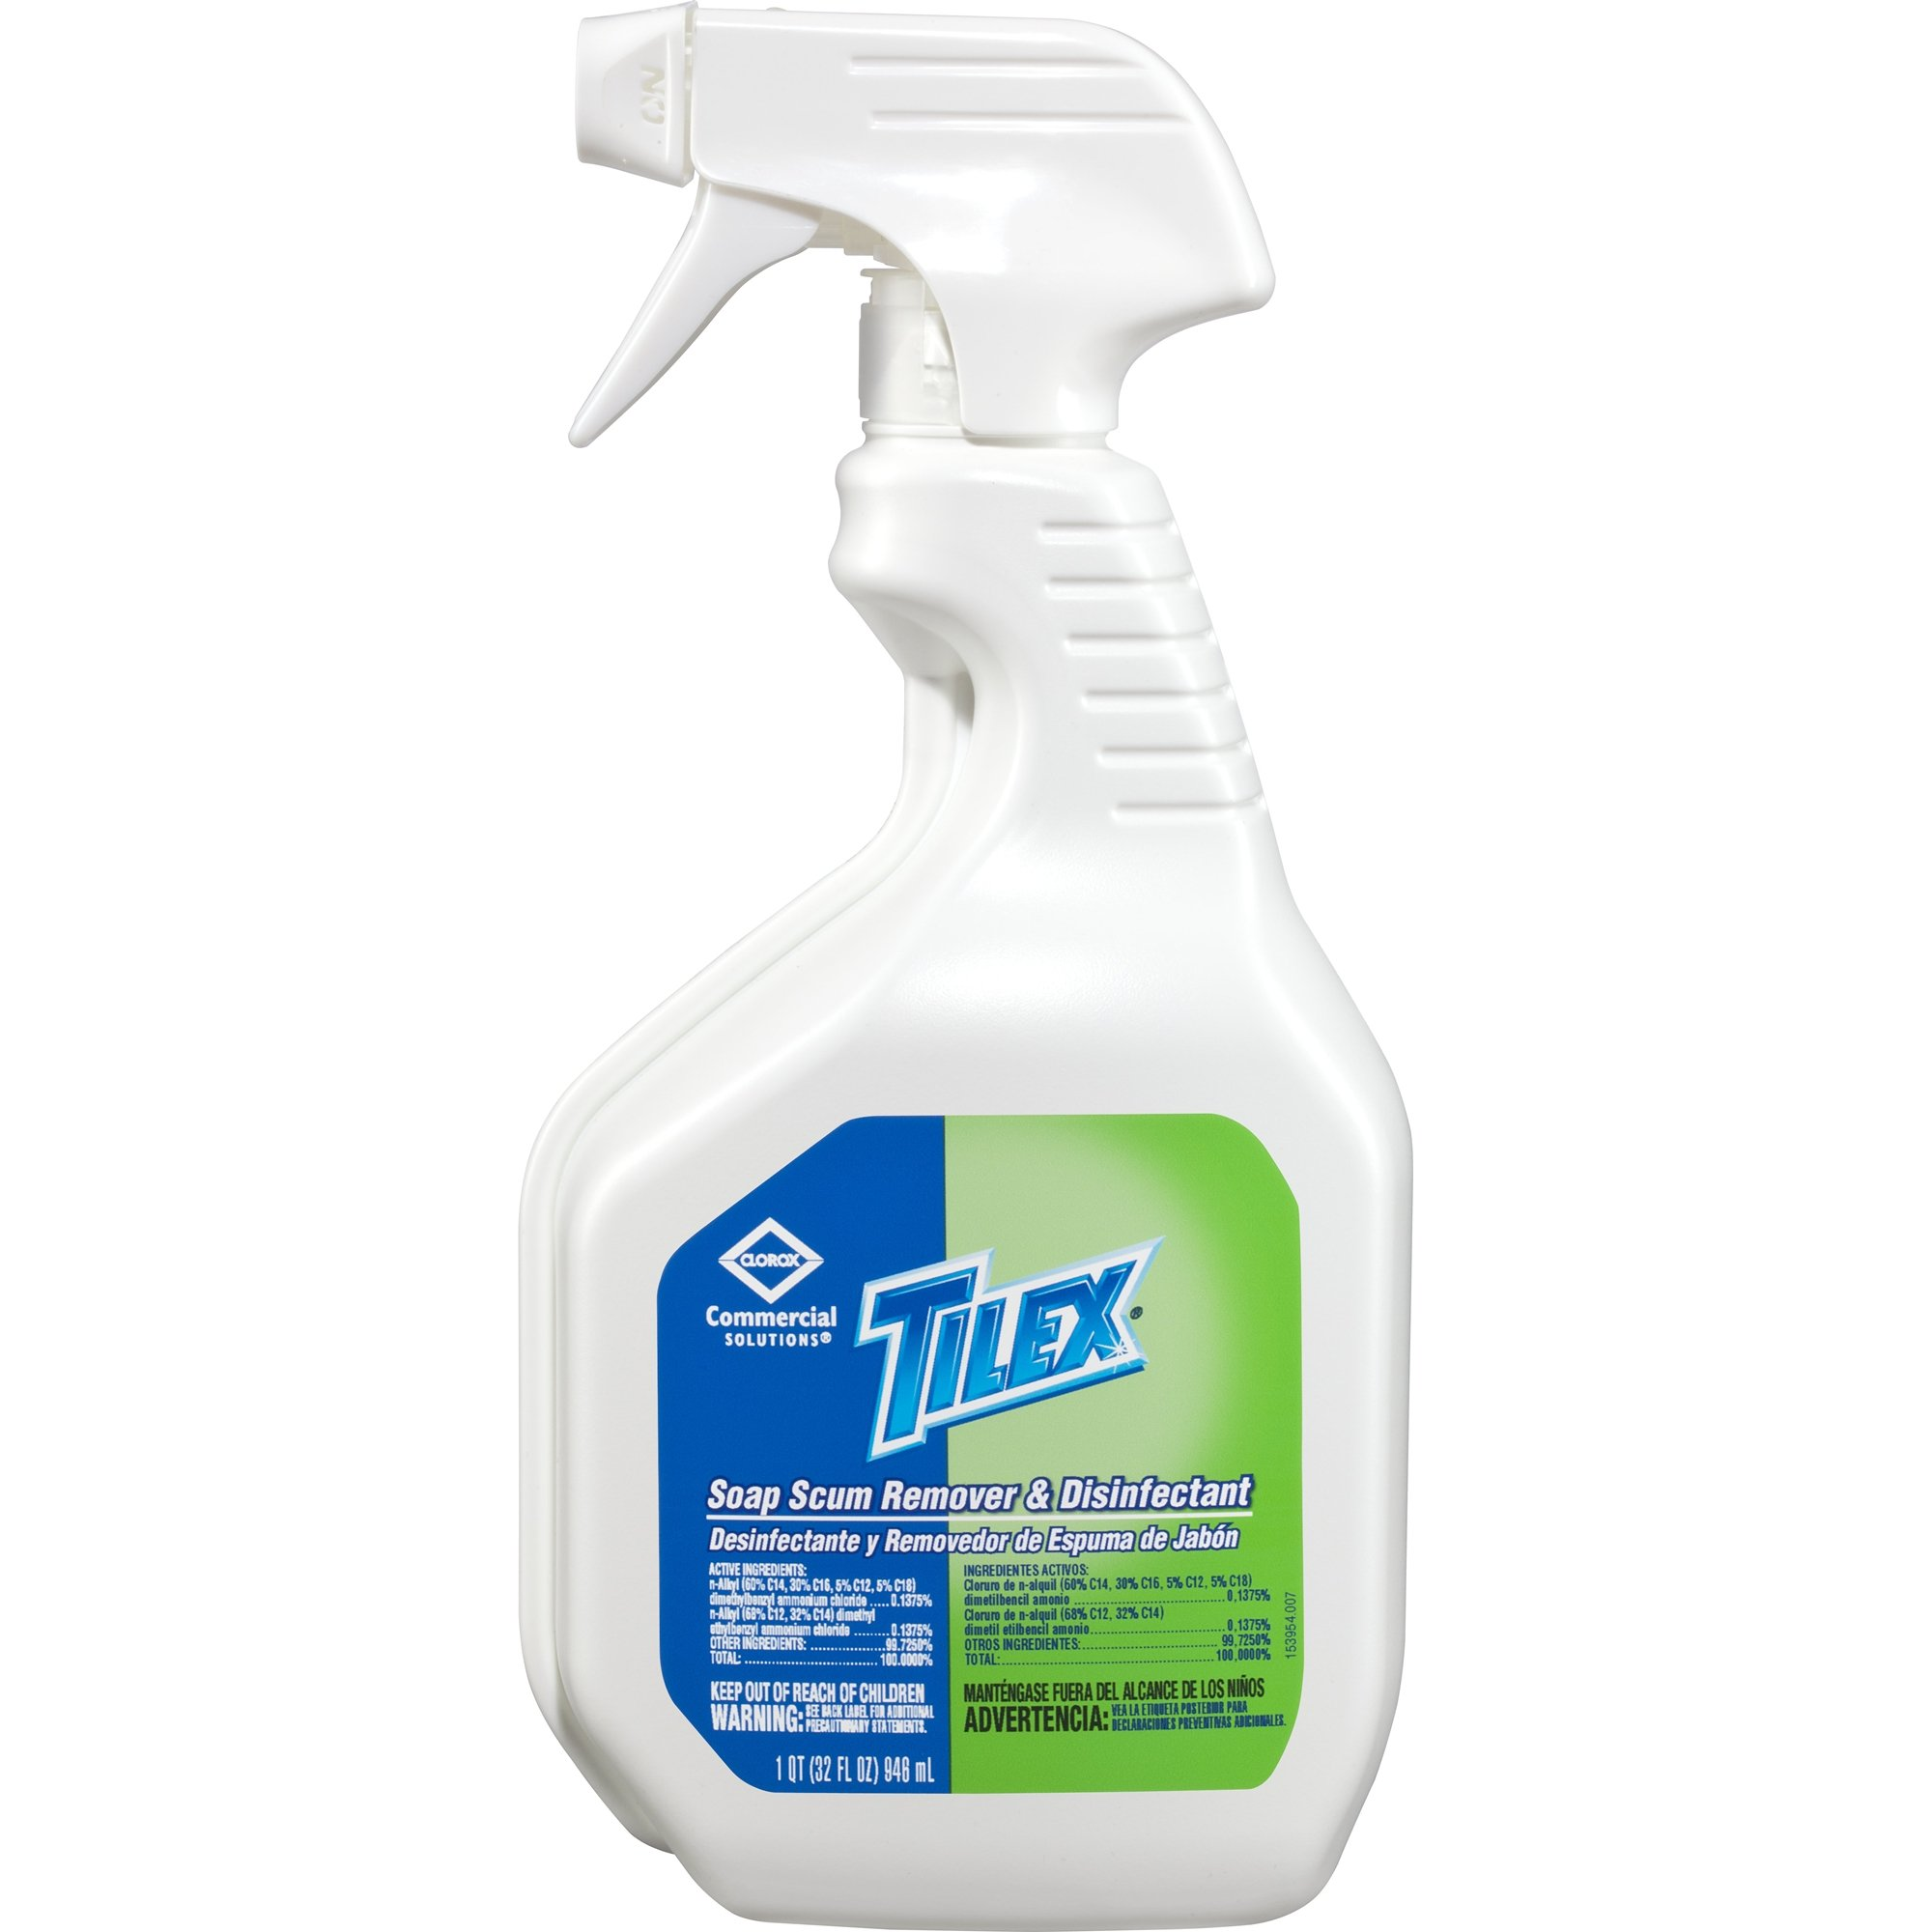 Tilex Soap Scum Remover & Disinfectant, Spray, 32 Ounces, 9 Bottles/Case (35604)